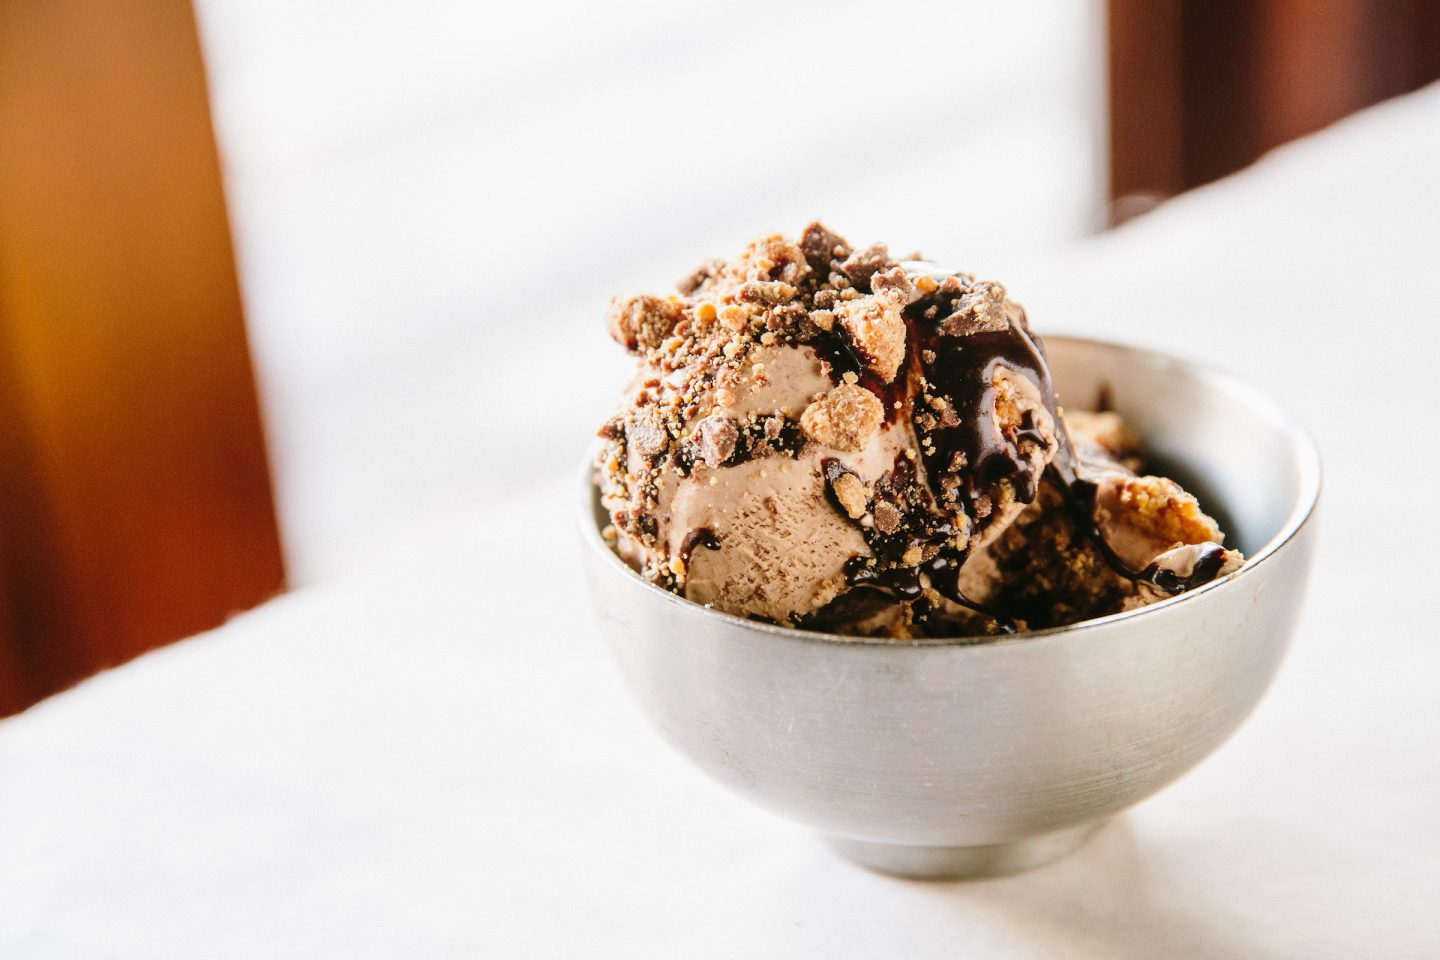 antico posto's peanut butter ice cream